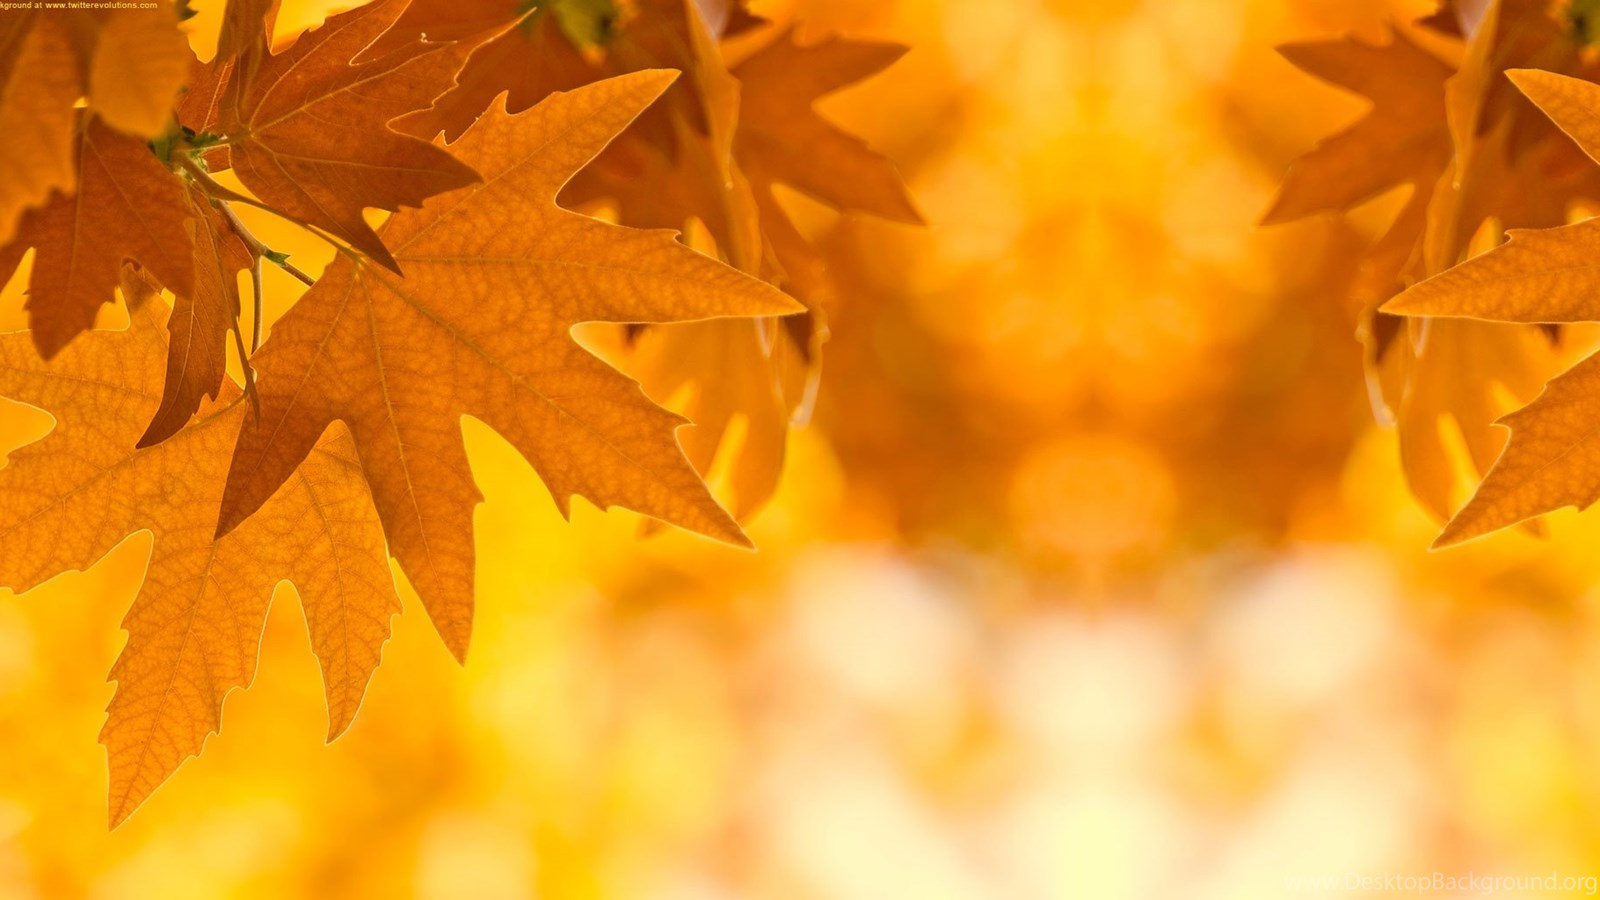 Fall Leaves Hd Mobile Wallpaper Autumn Leaves Border Design Ideas Wallpaper Fr Wallpaper